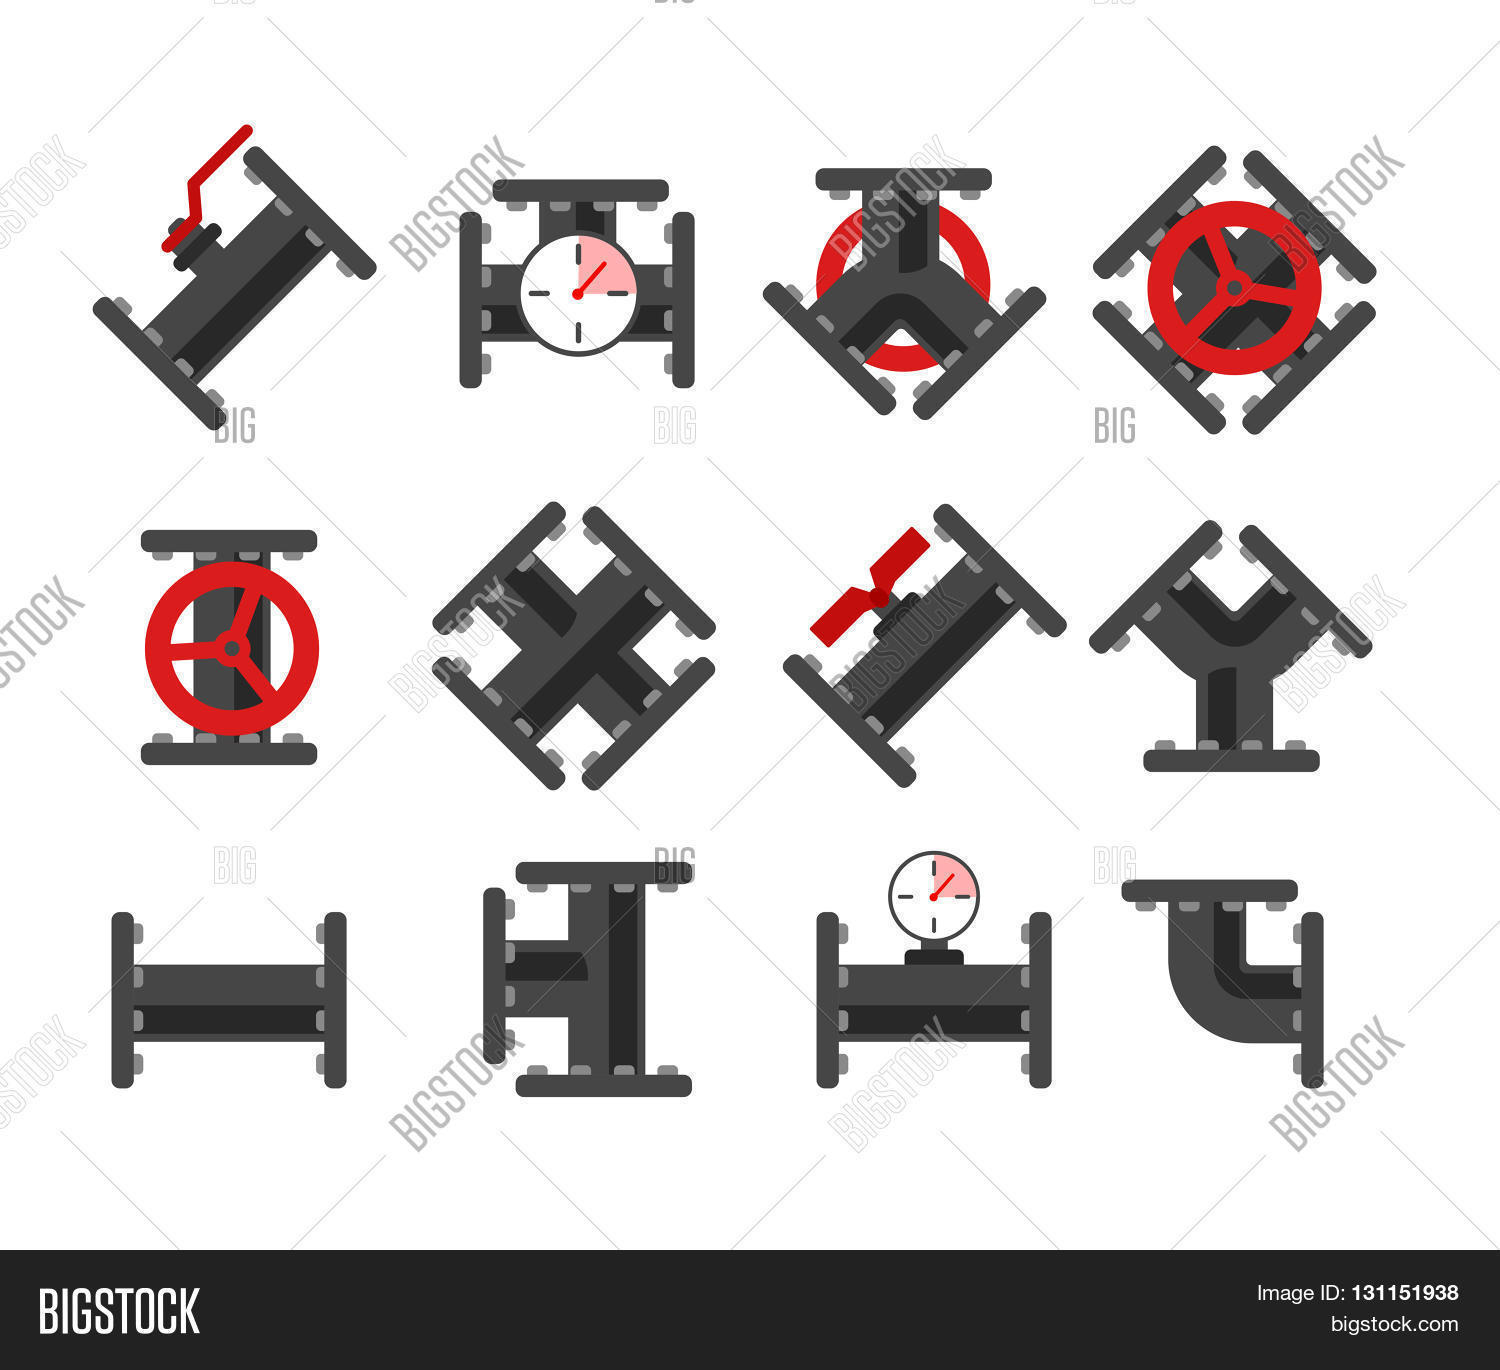 Pipe Fitting Vector Vector Amp Photo Free Trial